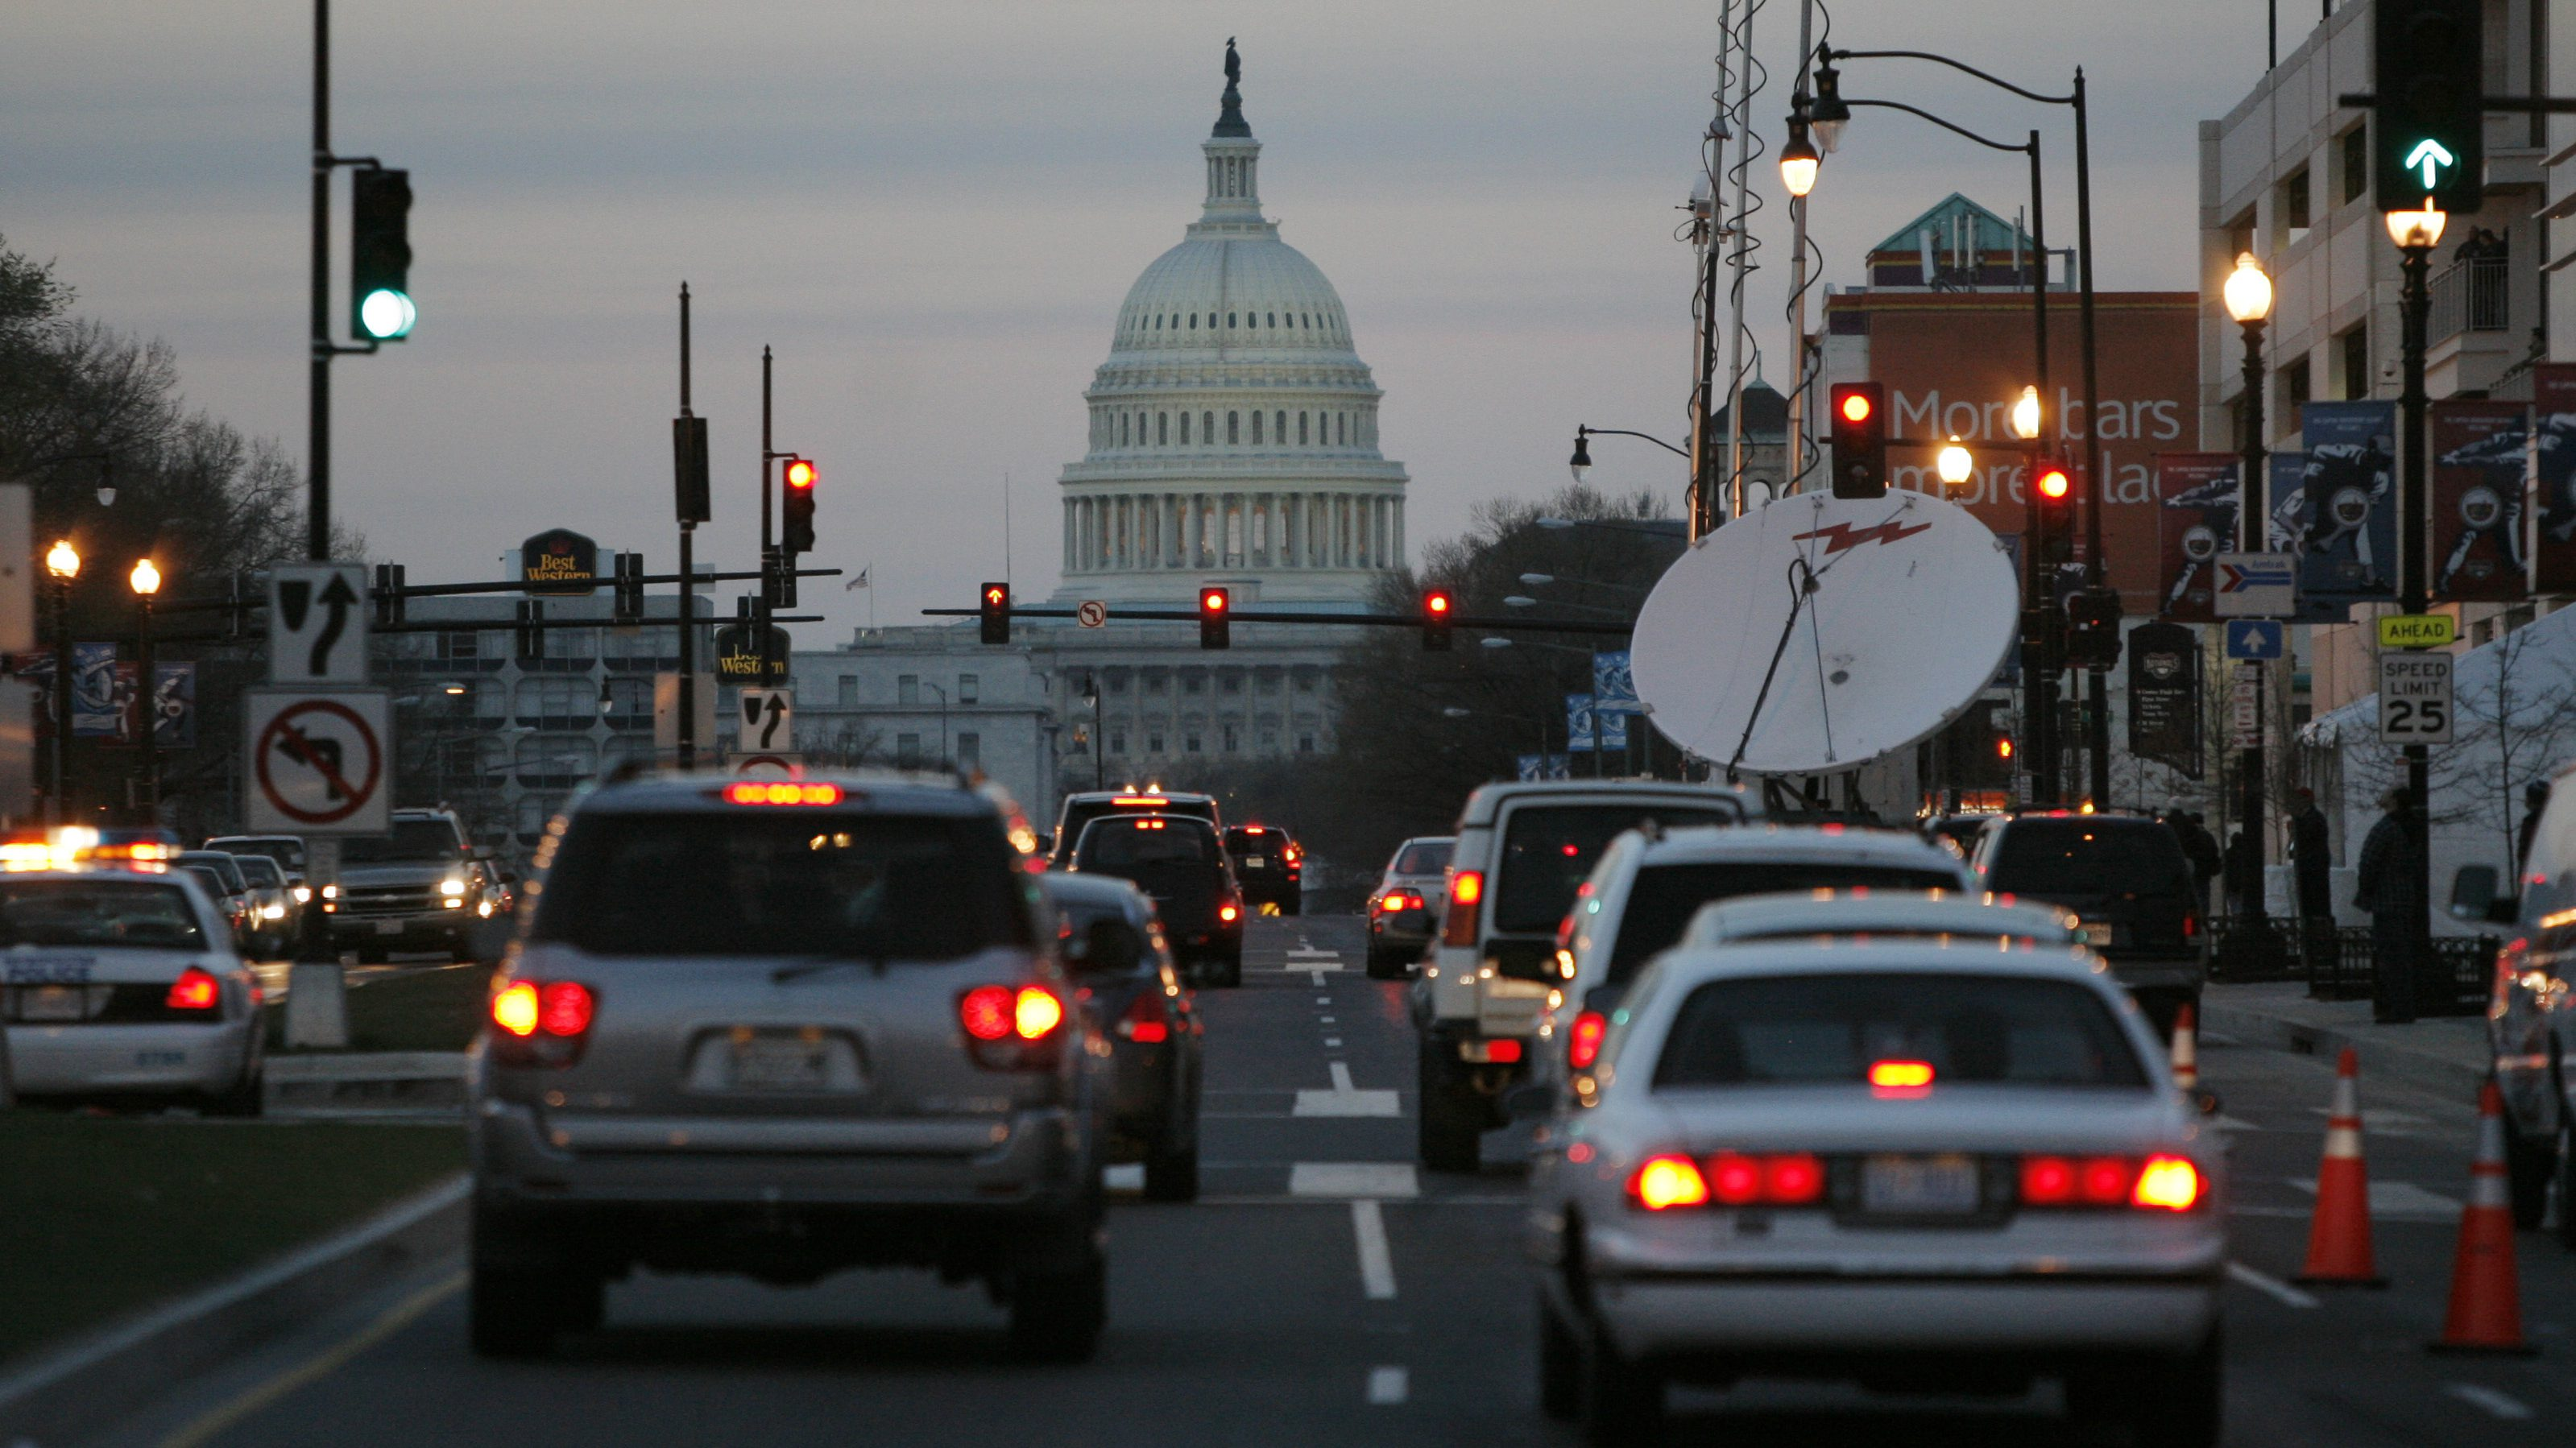 Traffic drives towards the U.S. Capitol building as they pass the outside of the new home of the Washington Nationals baseball team, Nationals Park, in Washington, March 29, 2008.